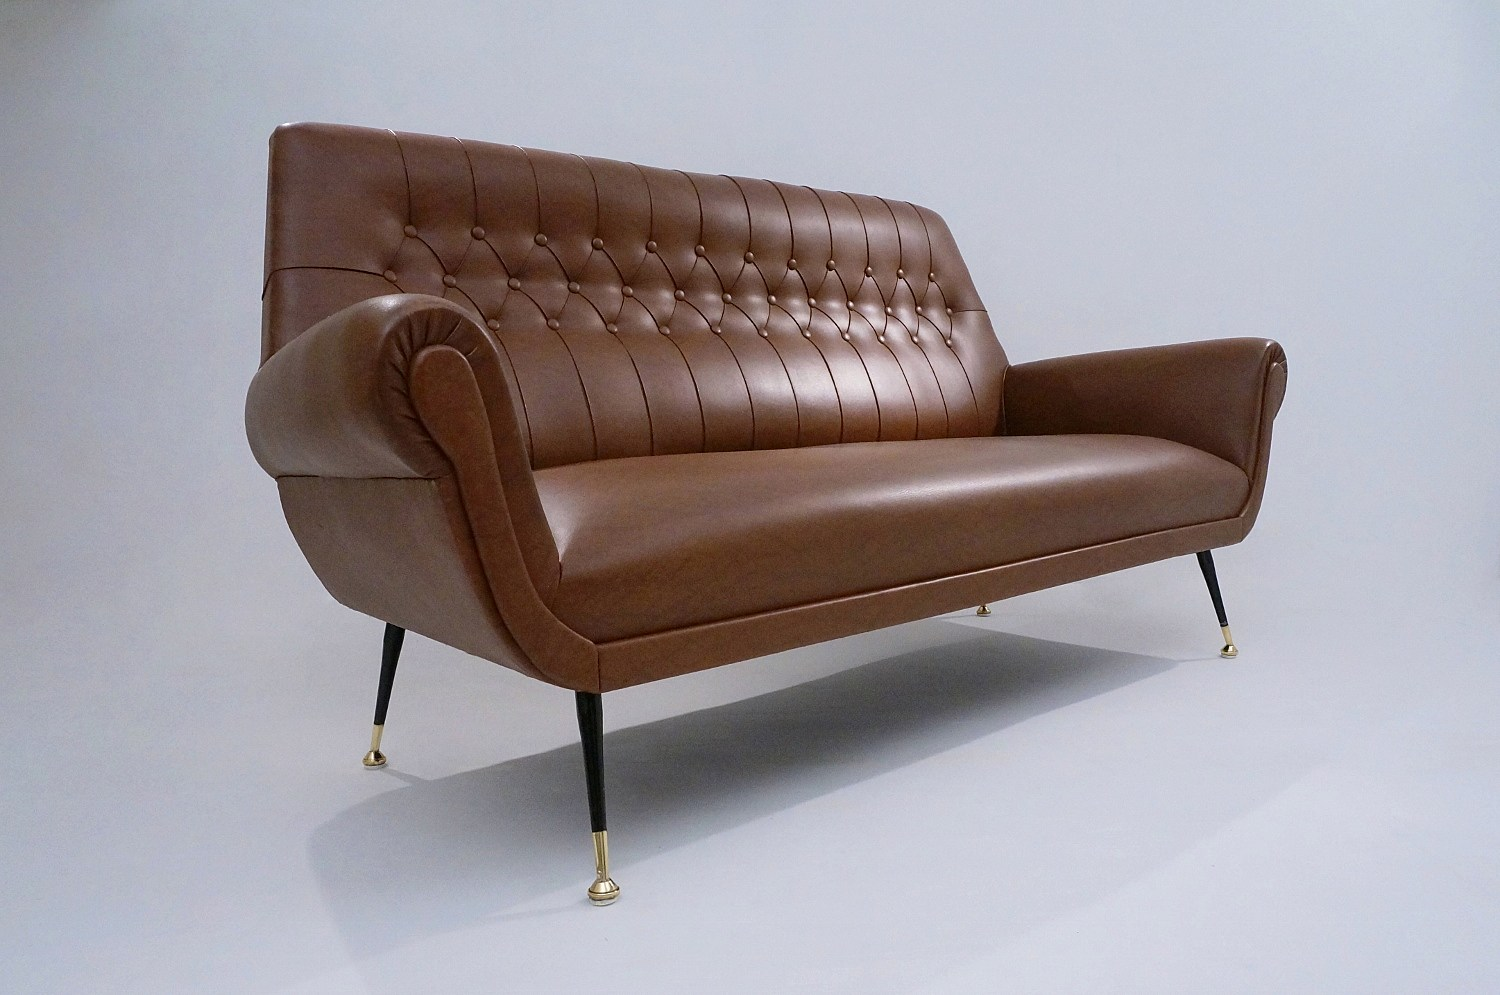 vinyl plastic sofa covers brown leather living room pinterest sofas best 15 of black thesofa